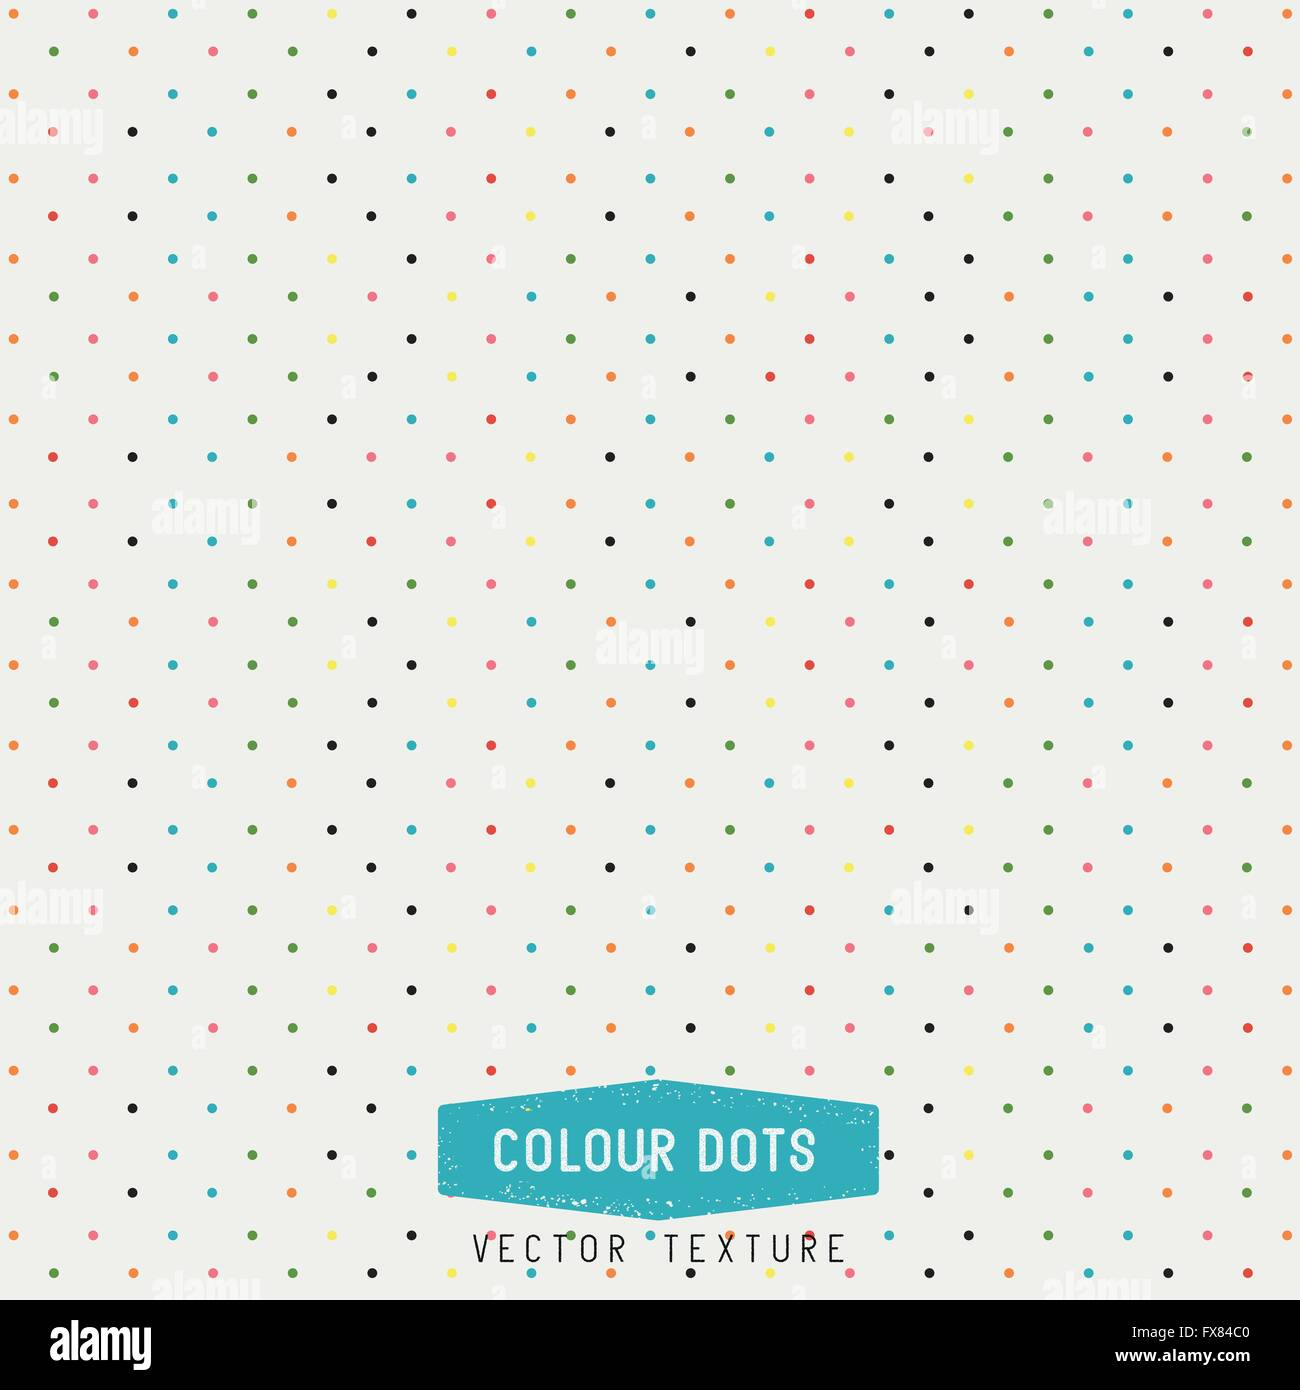 Colourful Dots Vector Texture. dots background. Vector Illustration. Hand made. - Stock Image